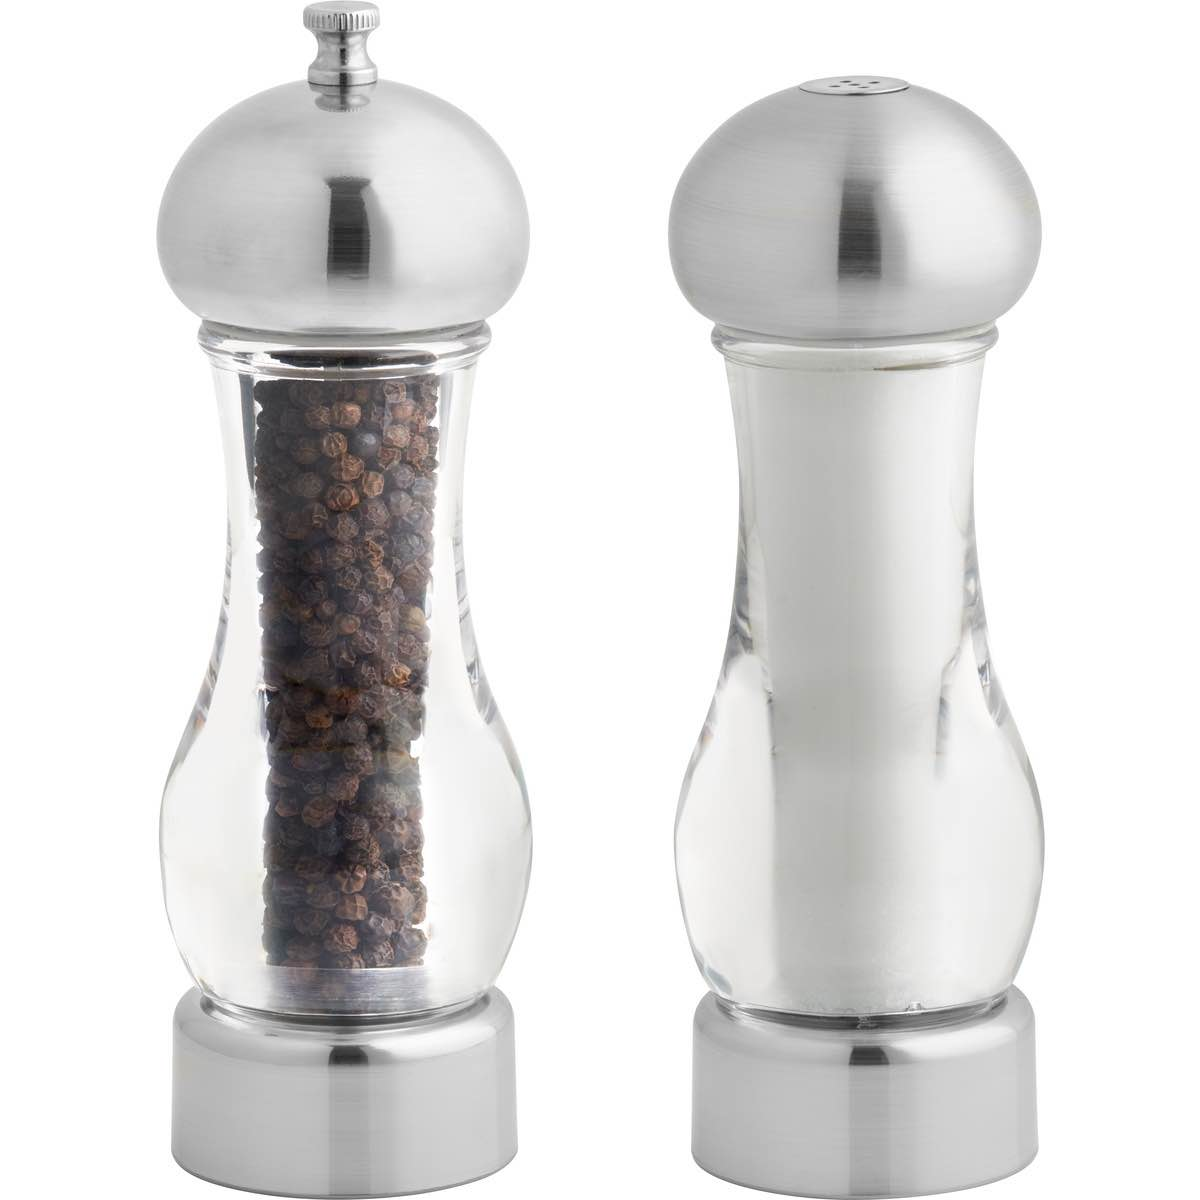 Brio Acrylic Pepper Mill & Salt Shaker Set